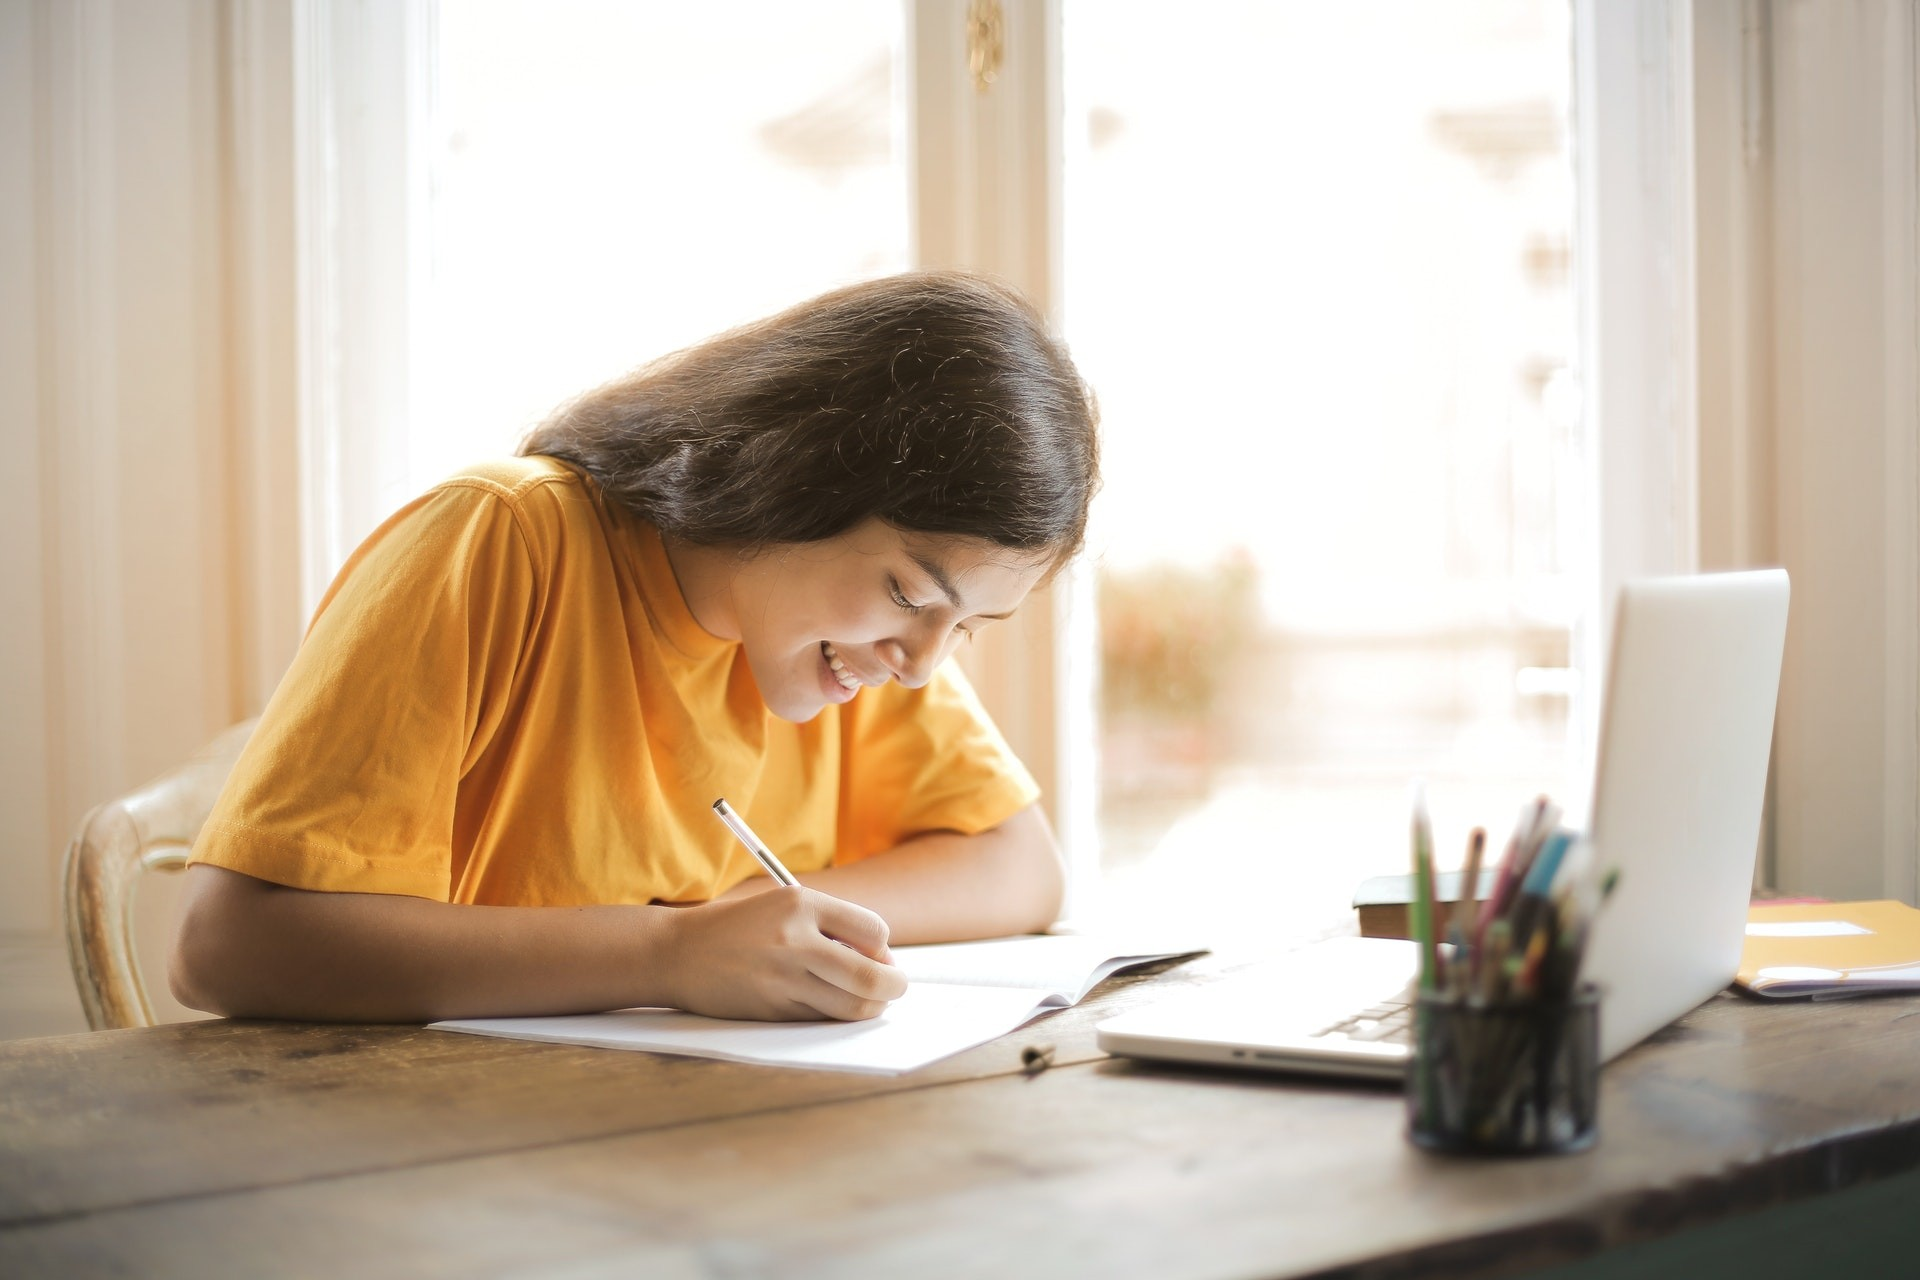 A student in a yellow shirt sits at a table and studies.